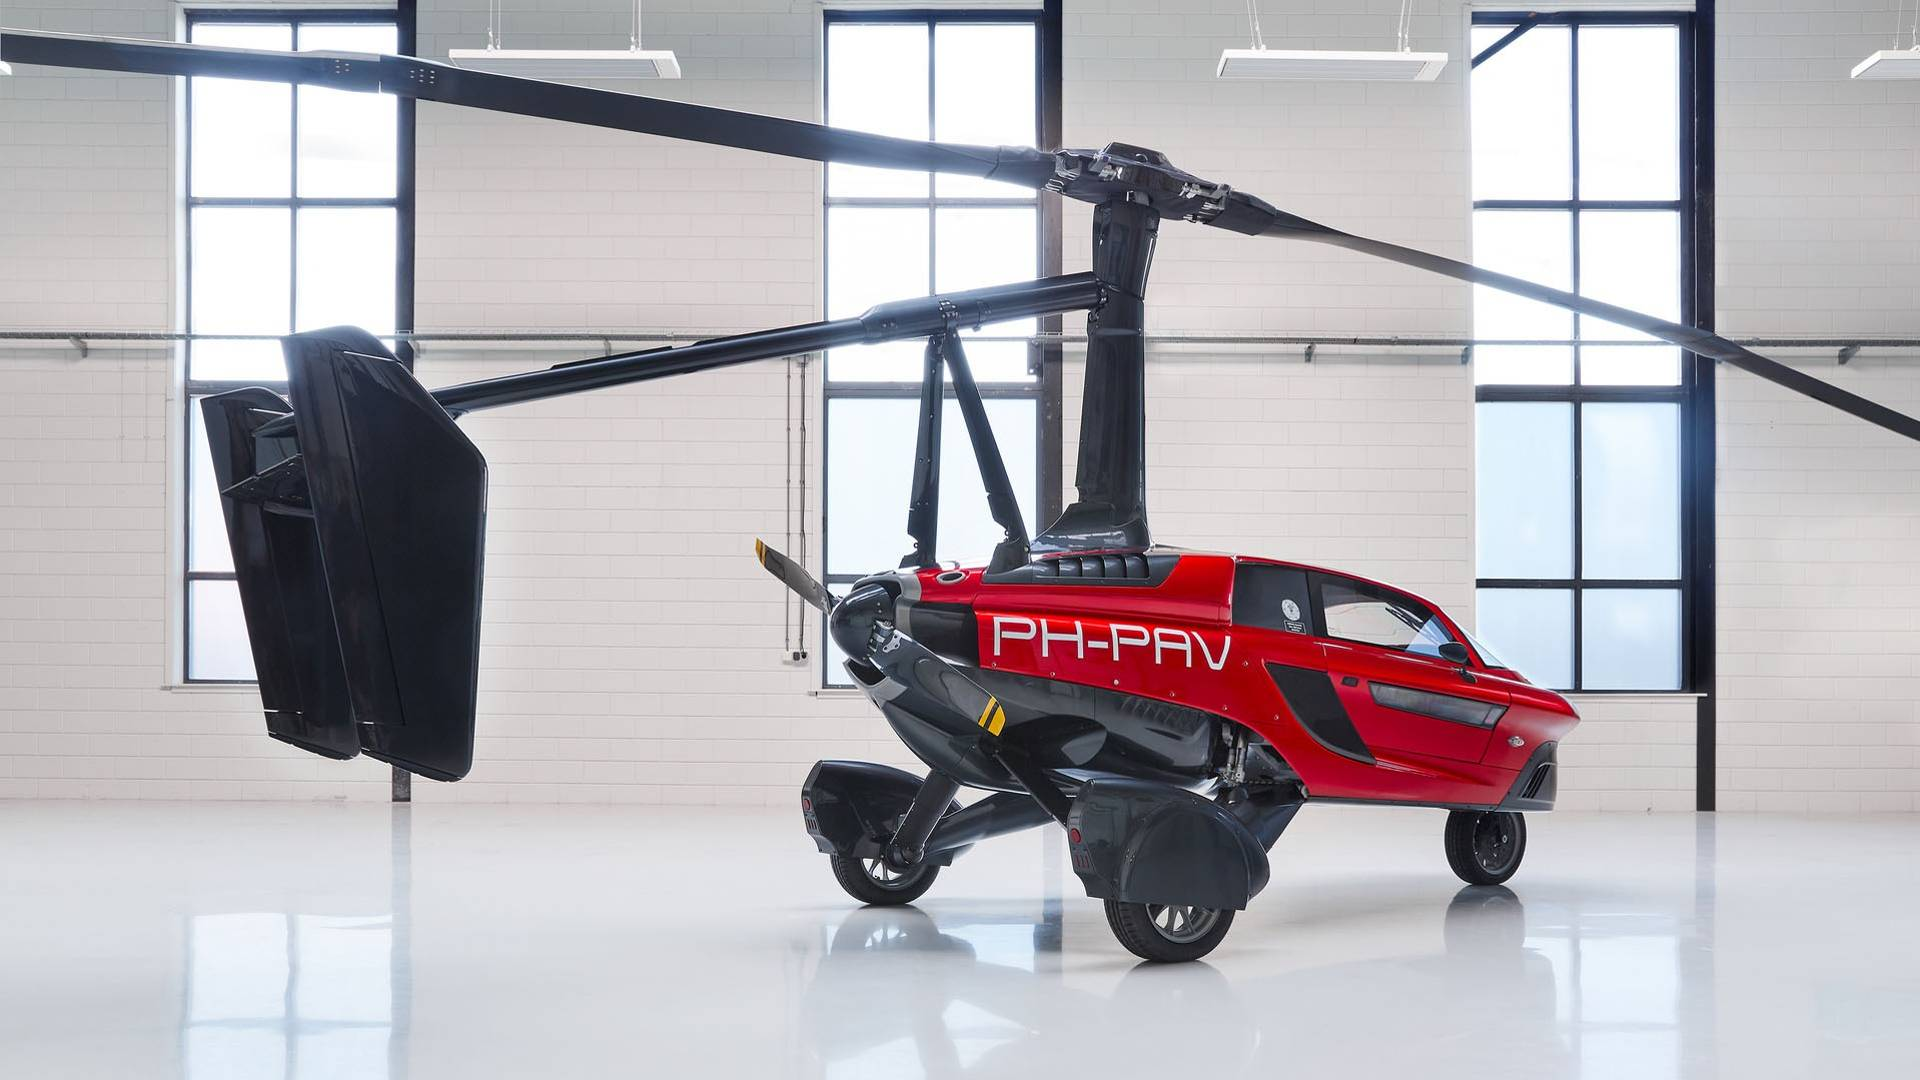 pal-v-liberty-flying-car (11)